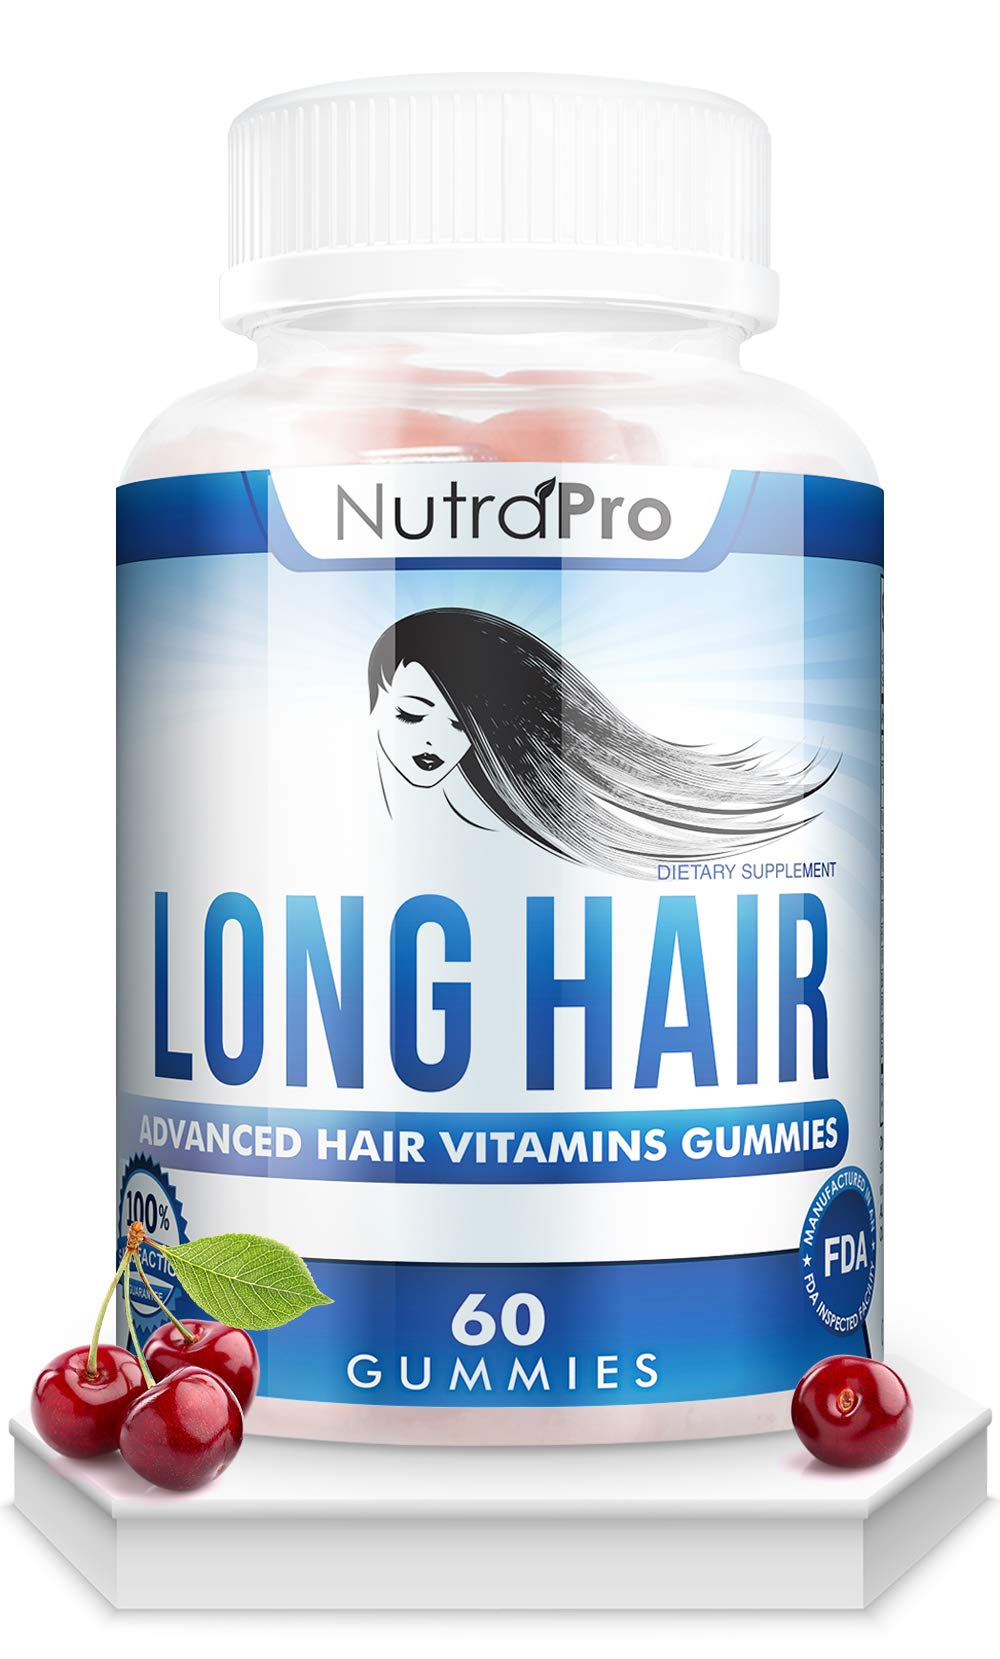 Long Hair Gummies - Anti-Hair Loss Supplement for Fast Hair Growth of Weak, Thinning Hair - Grow Long Thick Hair & Increase Hair Volume with Biotin And 10 Other Vitamins.For Men And Women. by NutraPro